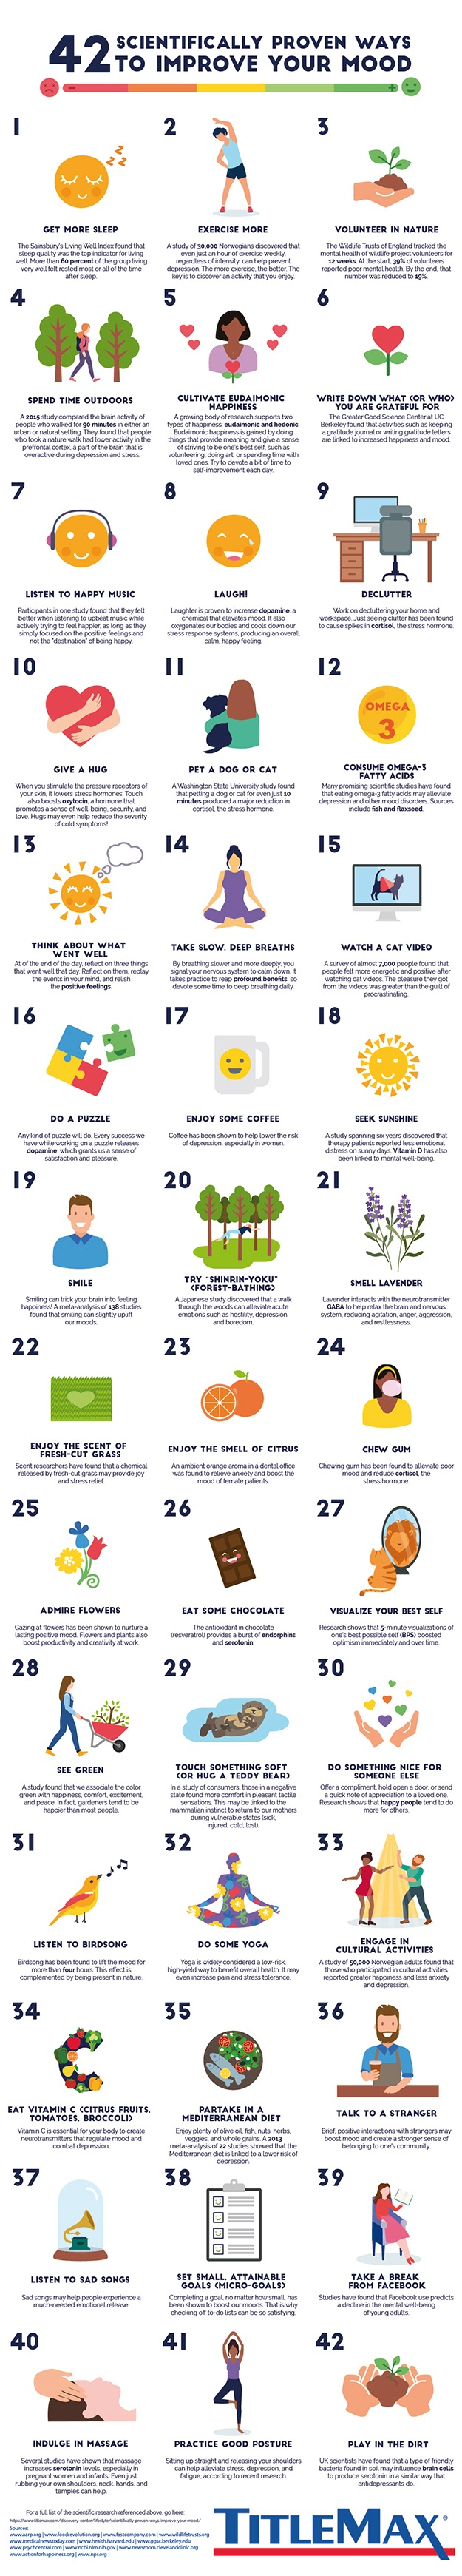 42 Scientifically Proven Ways to Improve Your Mood #infographic